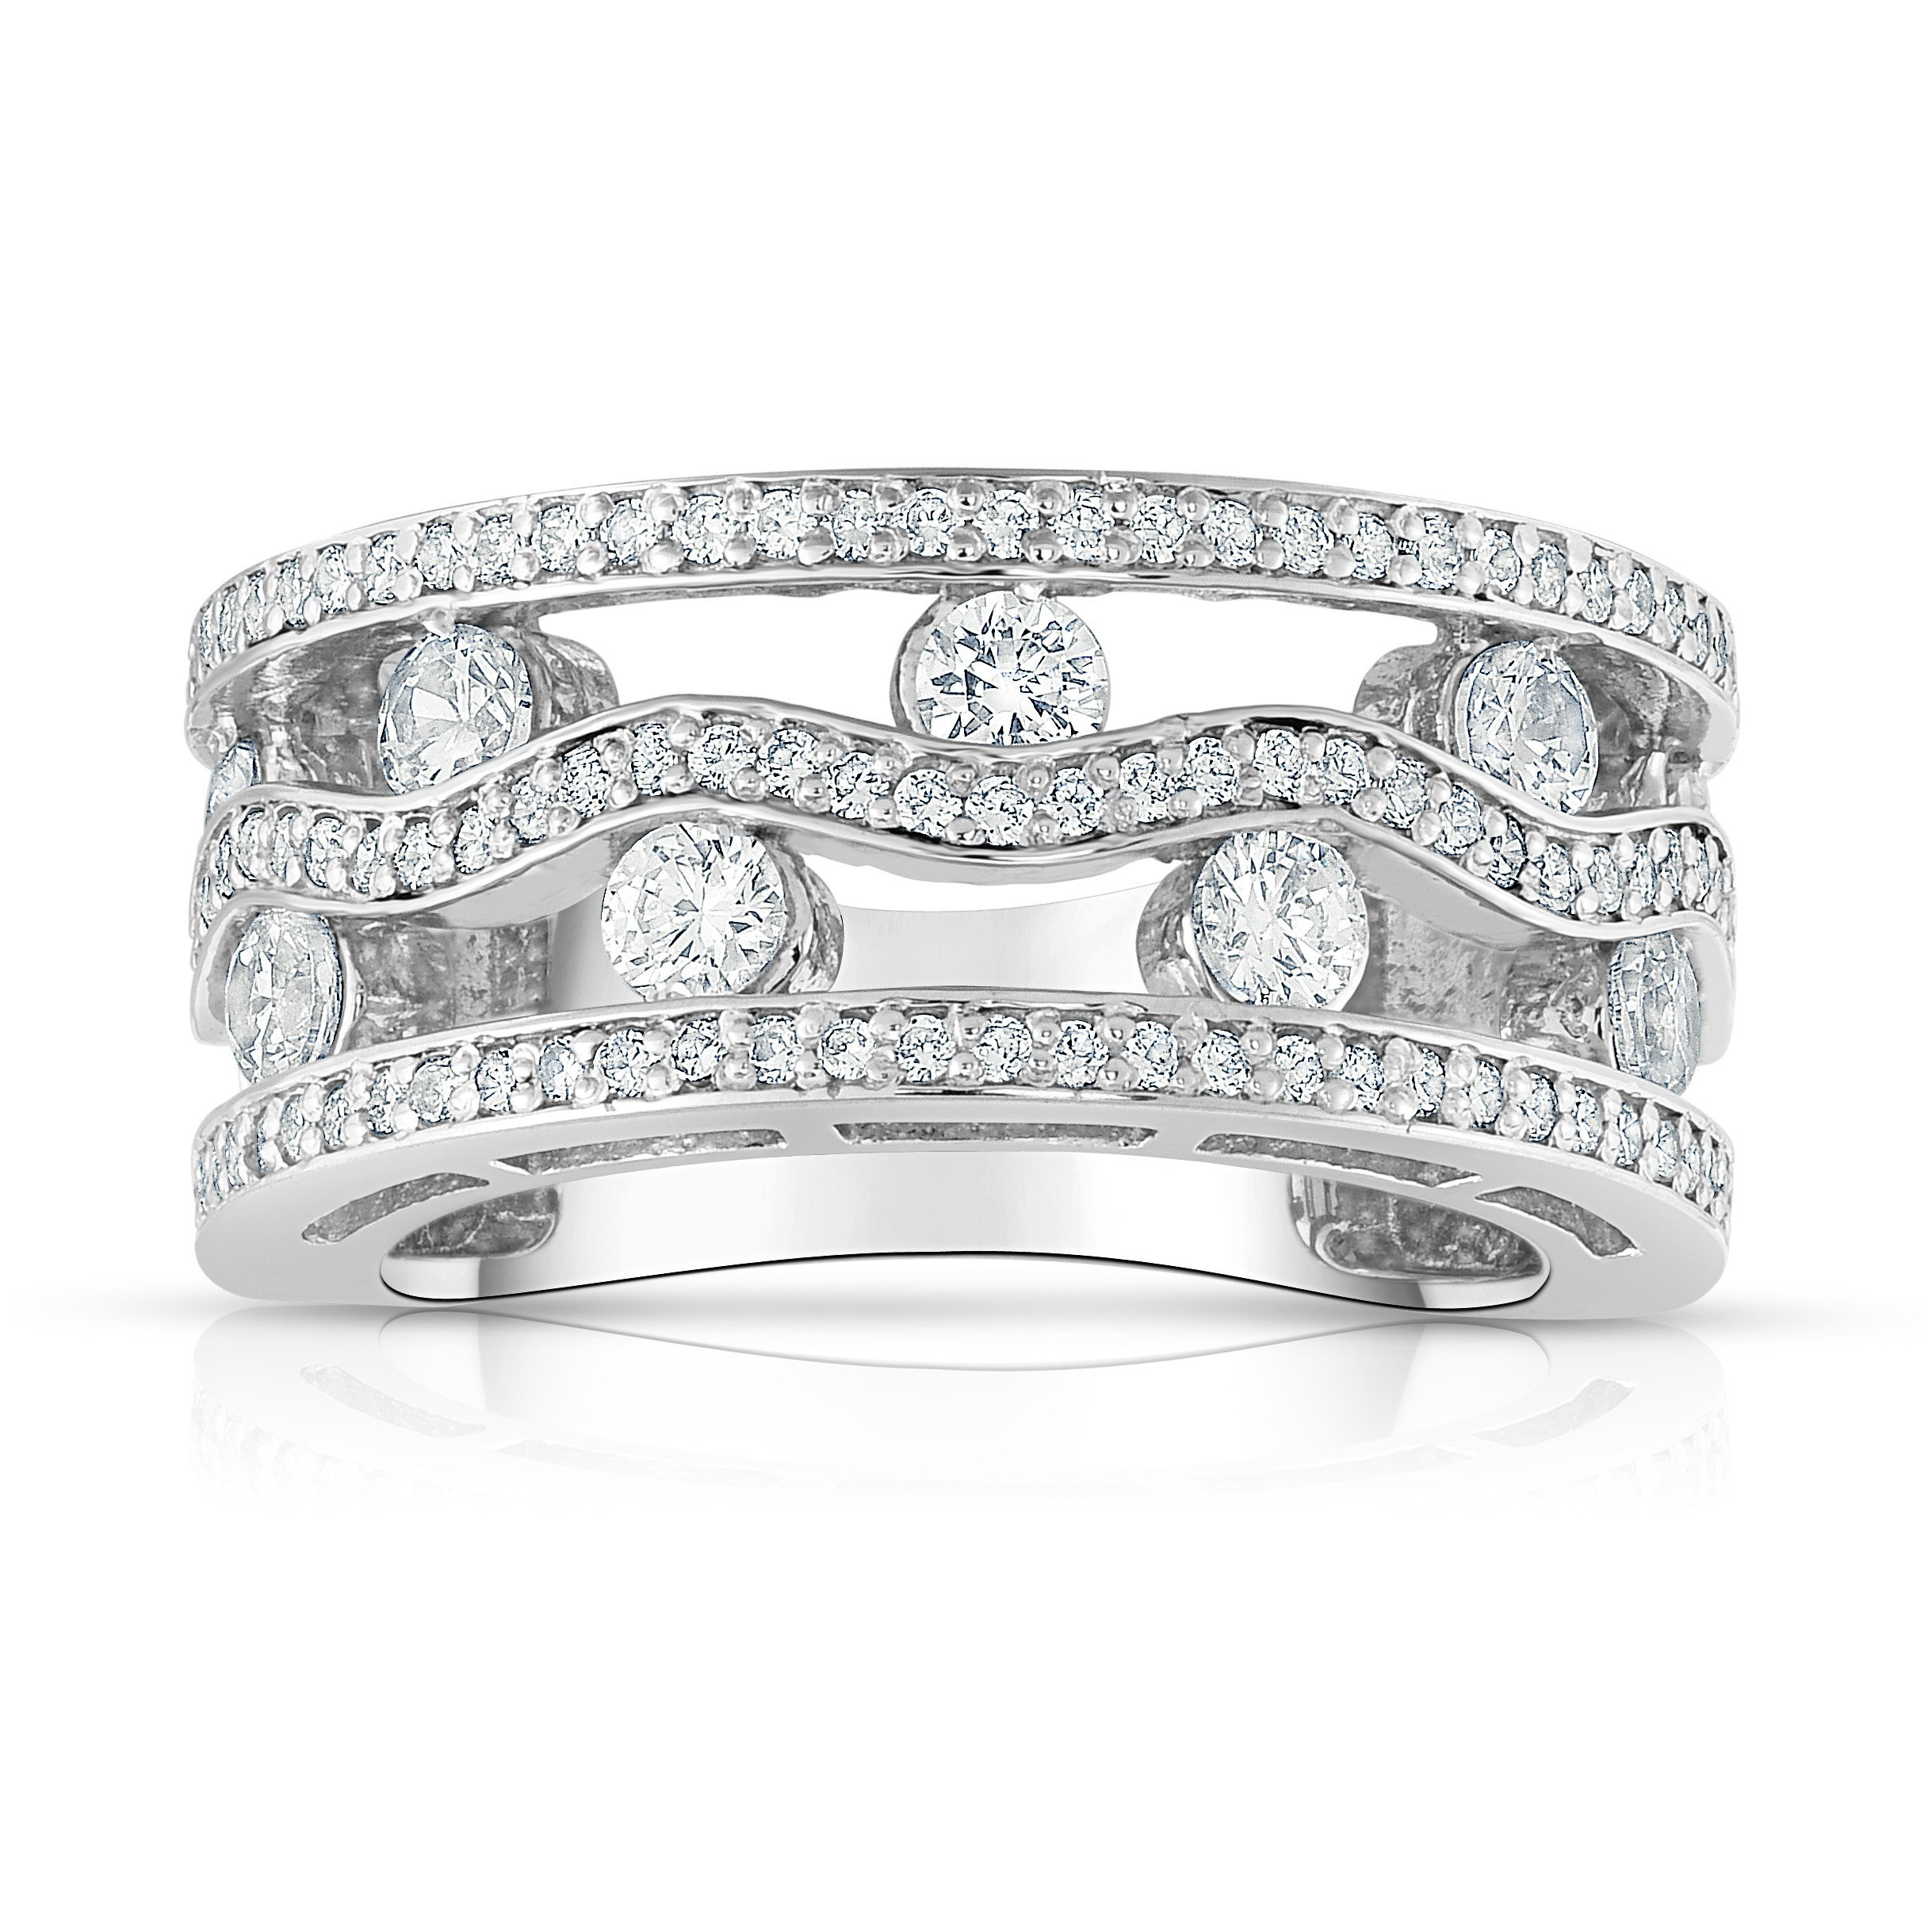 Noray Designs 14K White Gold Diamond (1.40 Ct, SI2-I1 Clarity, G-H Color) Wide Wedding Ring